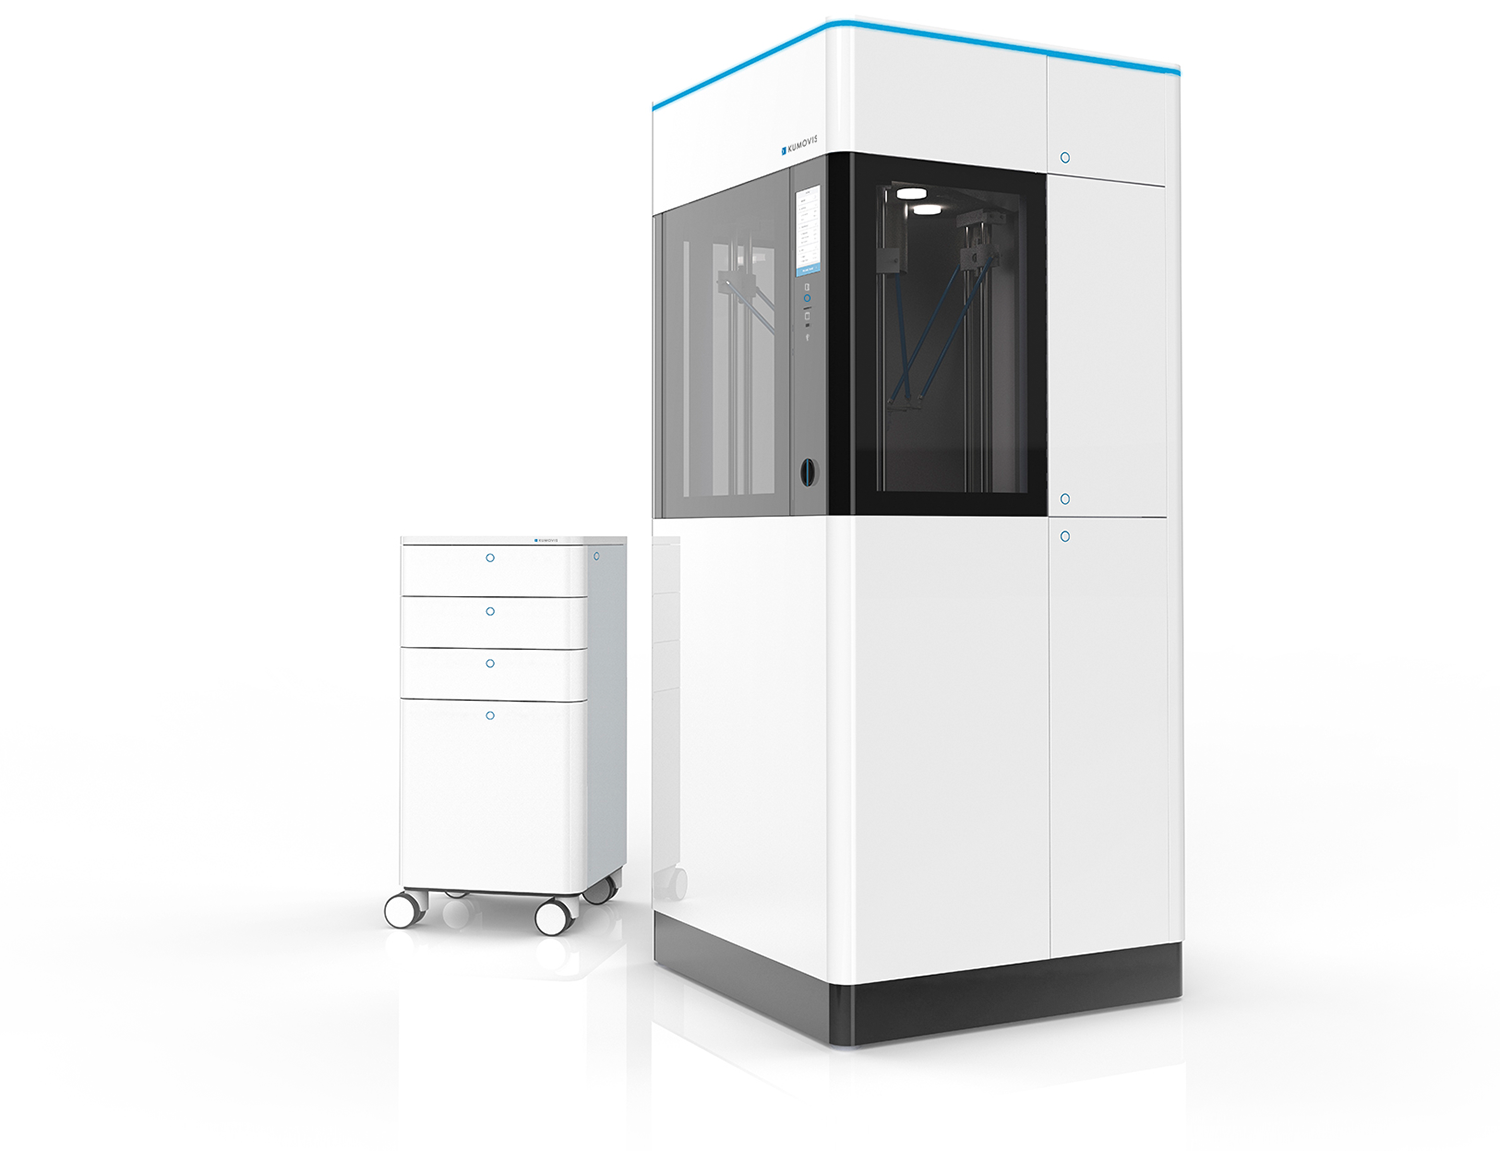 Kumovis R1: FLM Printing With an Integrated Cleanroom